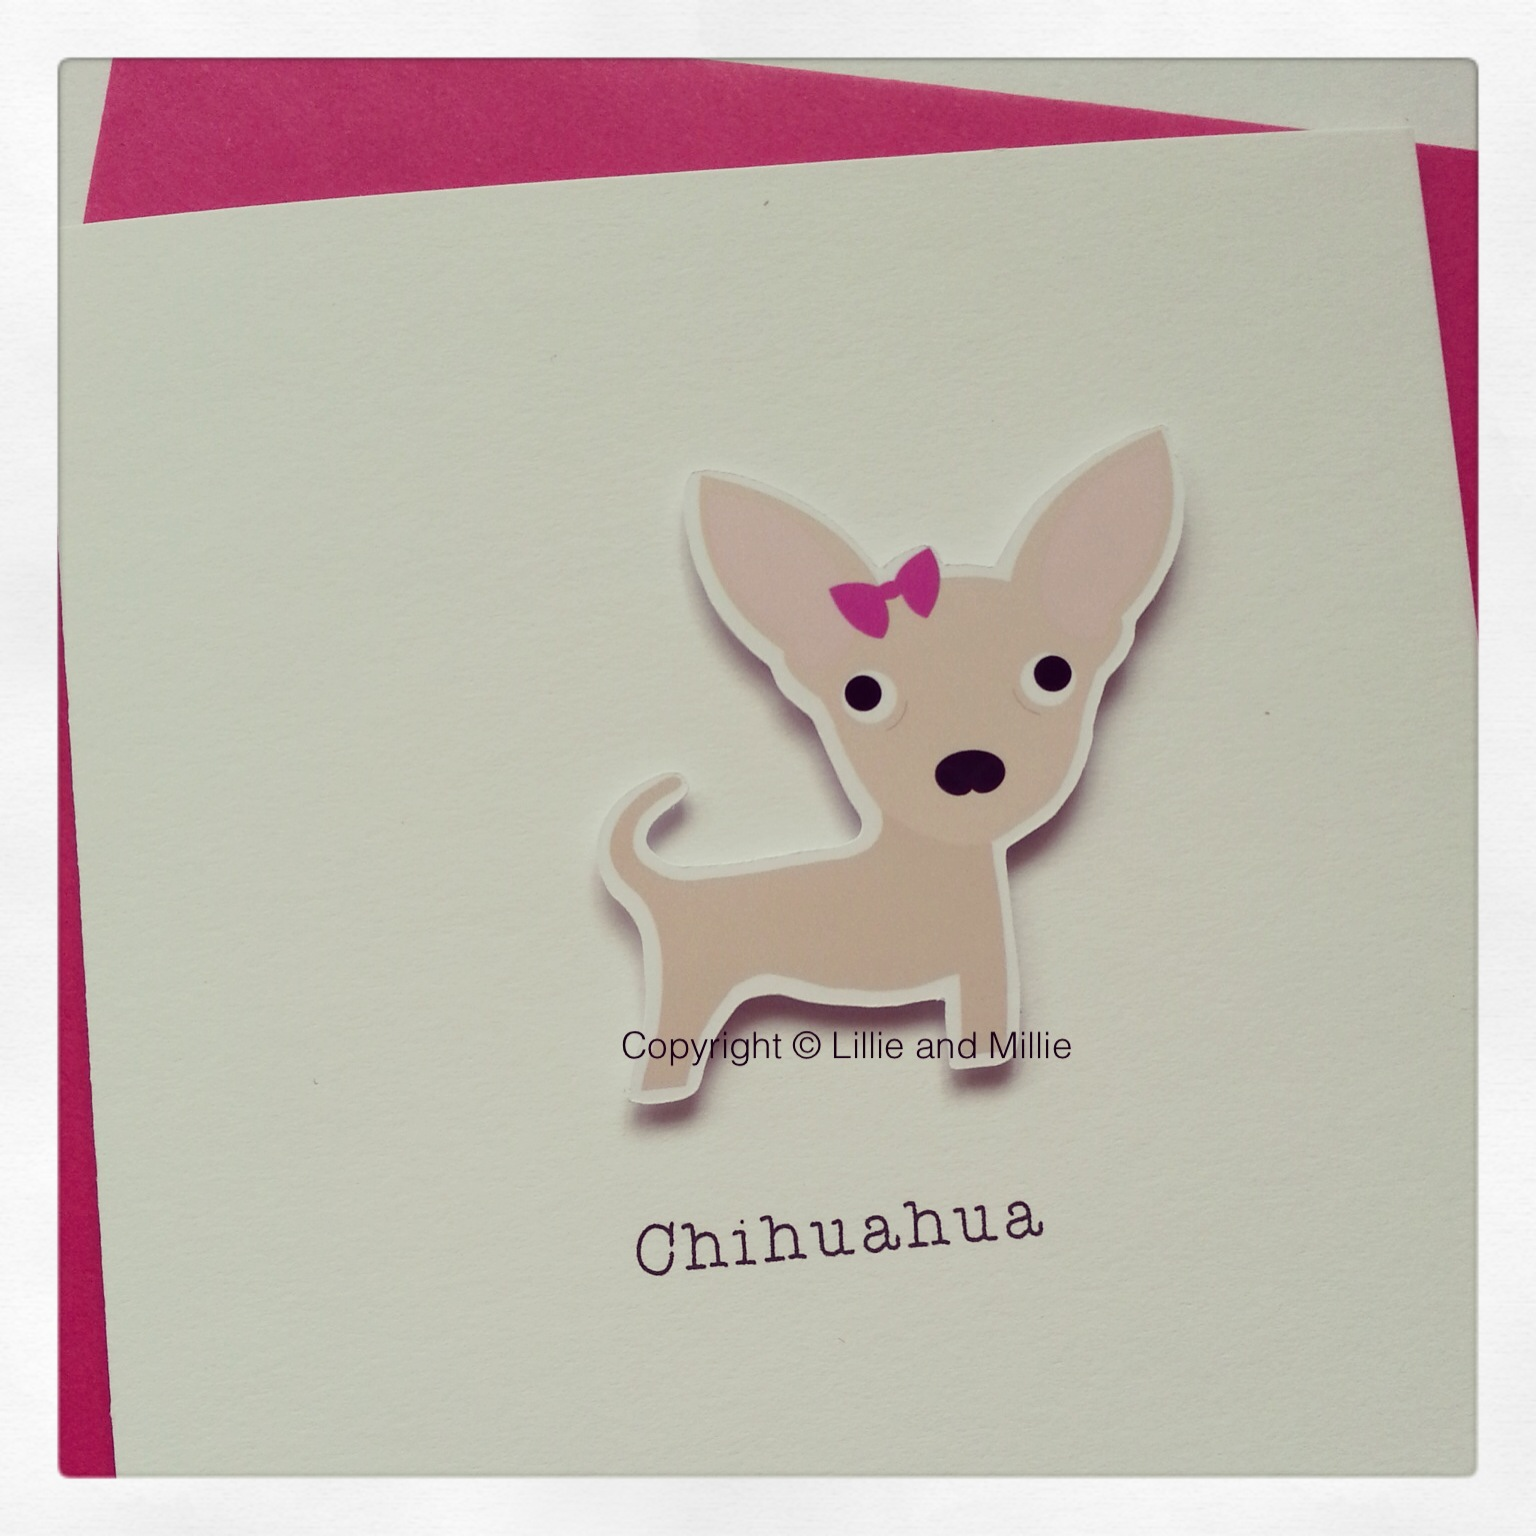 Cute and Cuddly Smooth Chihuahua Card